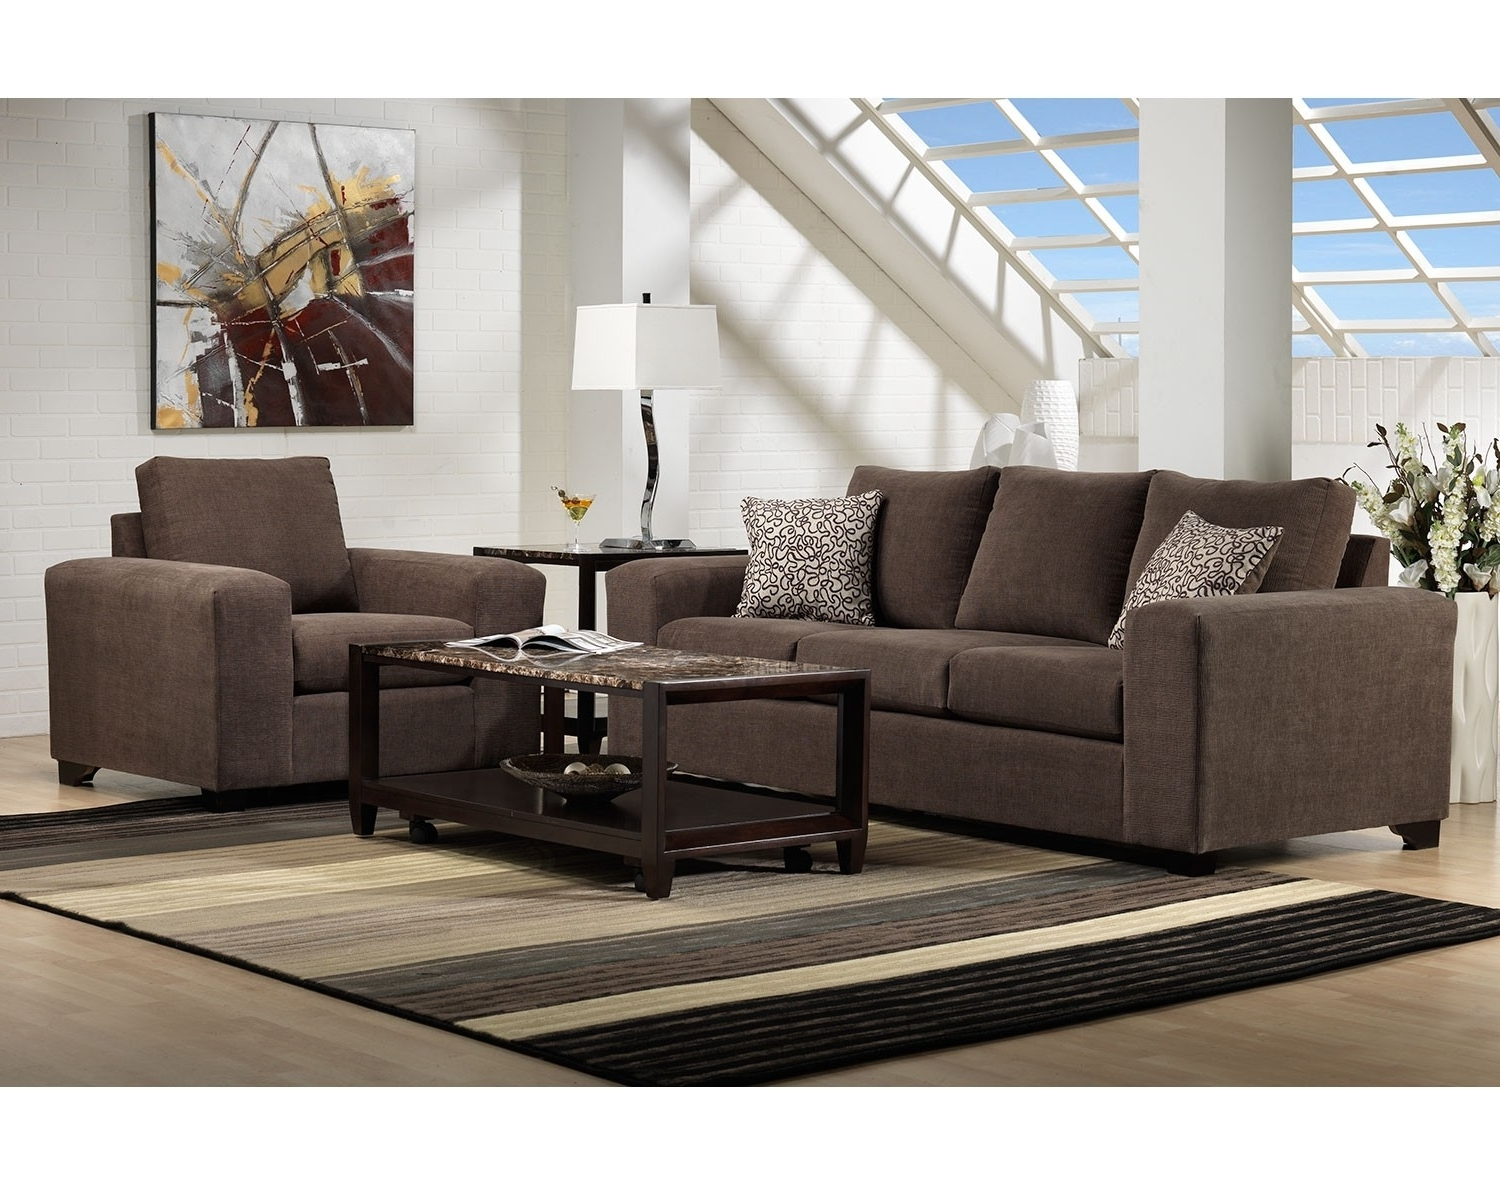 Sectional Sofas At Edmonton With Regard To Most Recent Modern Furniture Edmonton Living Room Collection Leons Loveseat (View 18 of 20)